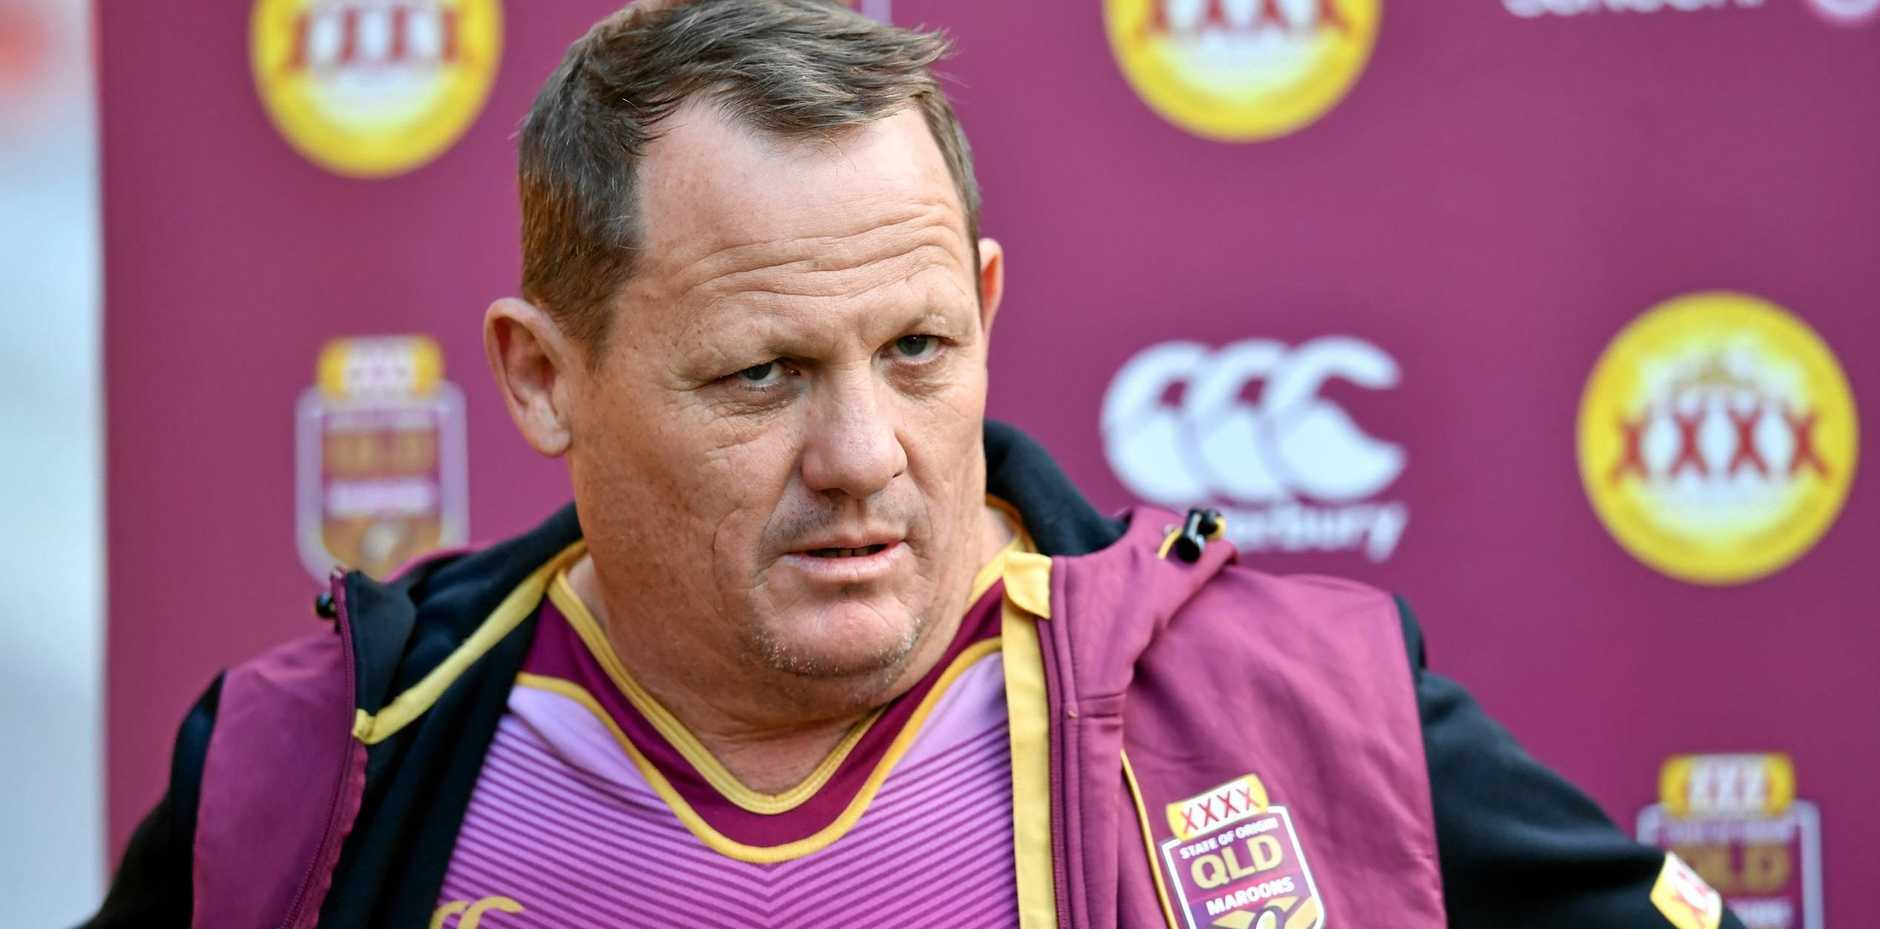 Queensland coach Kevin Walters is back at the Broncos.